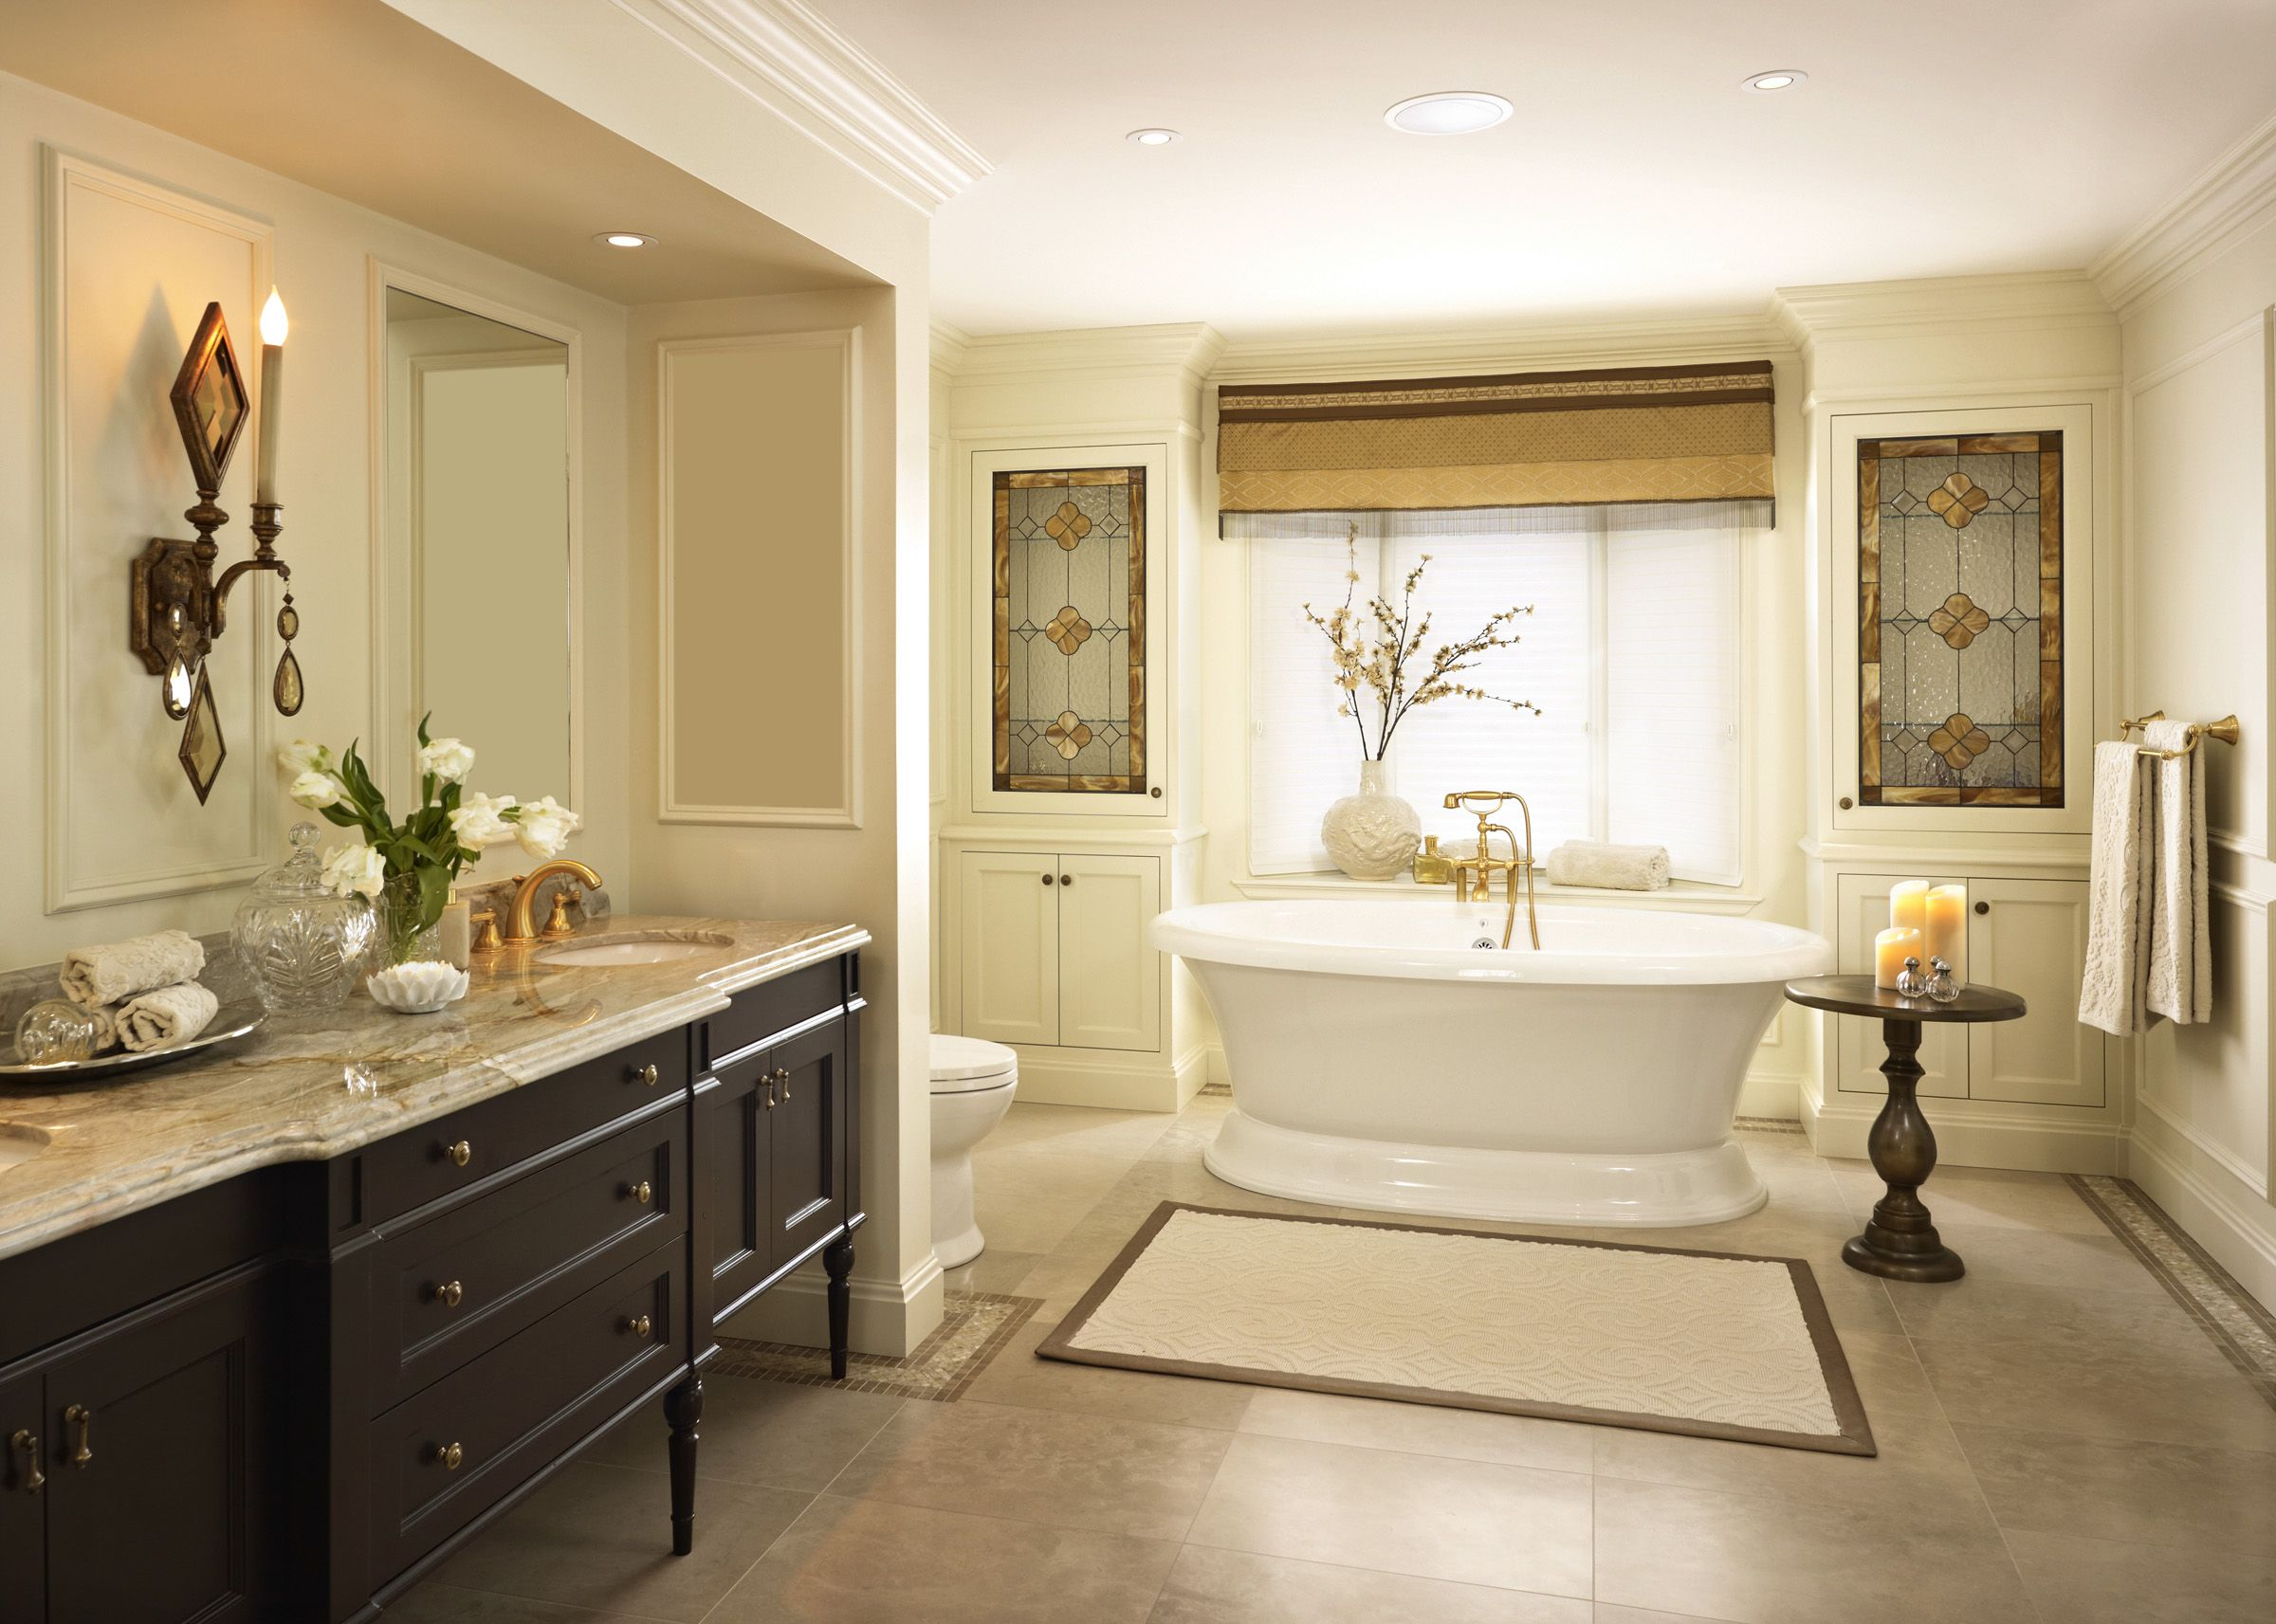 This master bathroom is the ultimate retreat with all the amenities ...